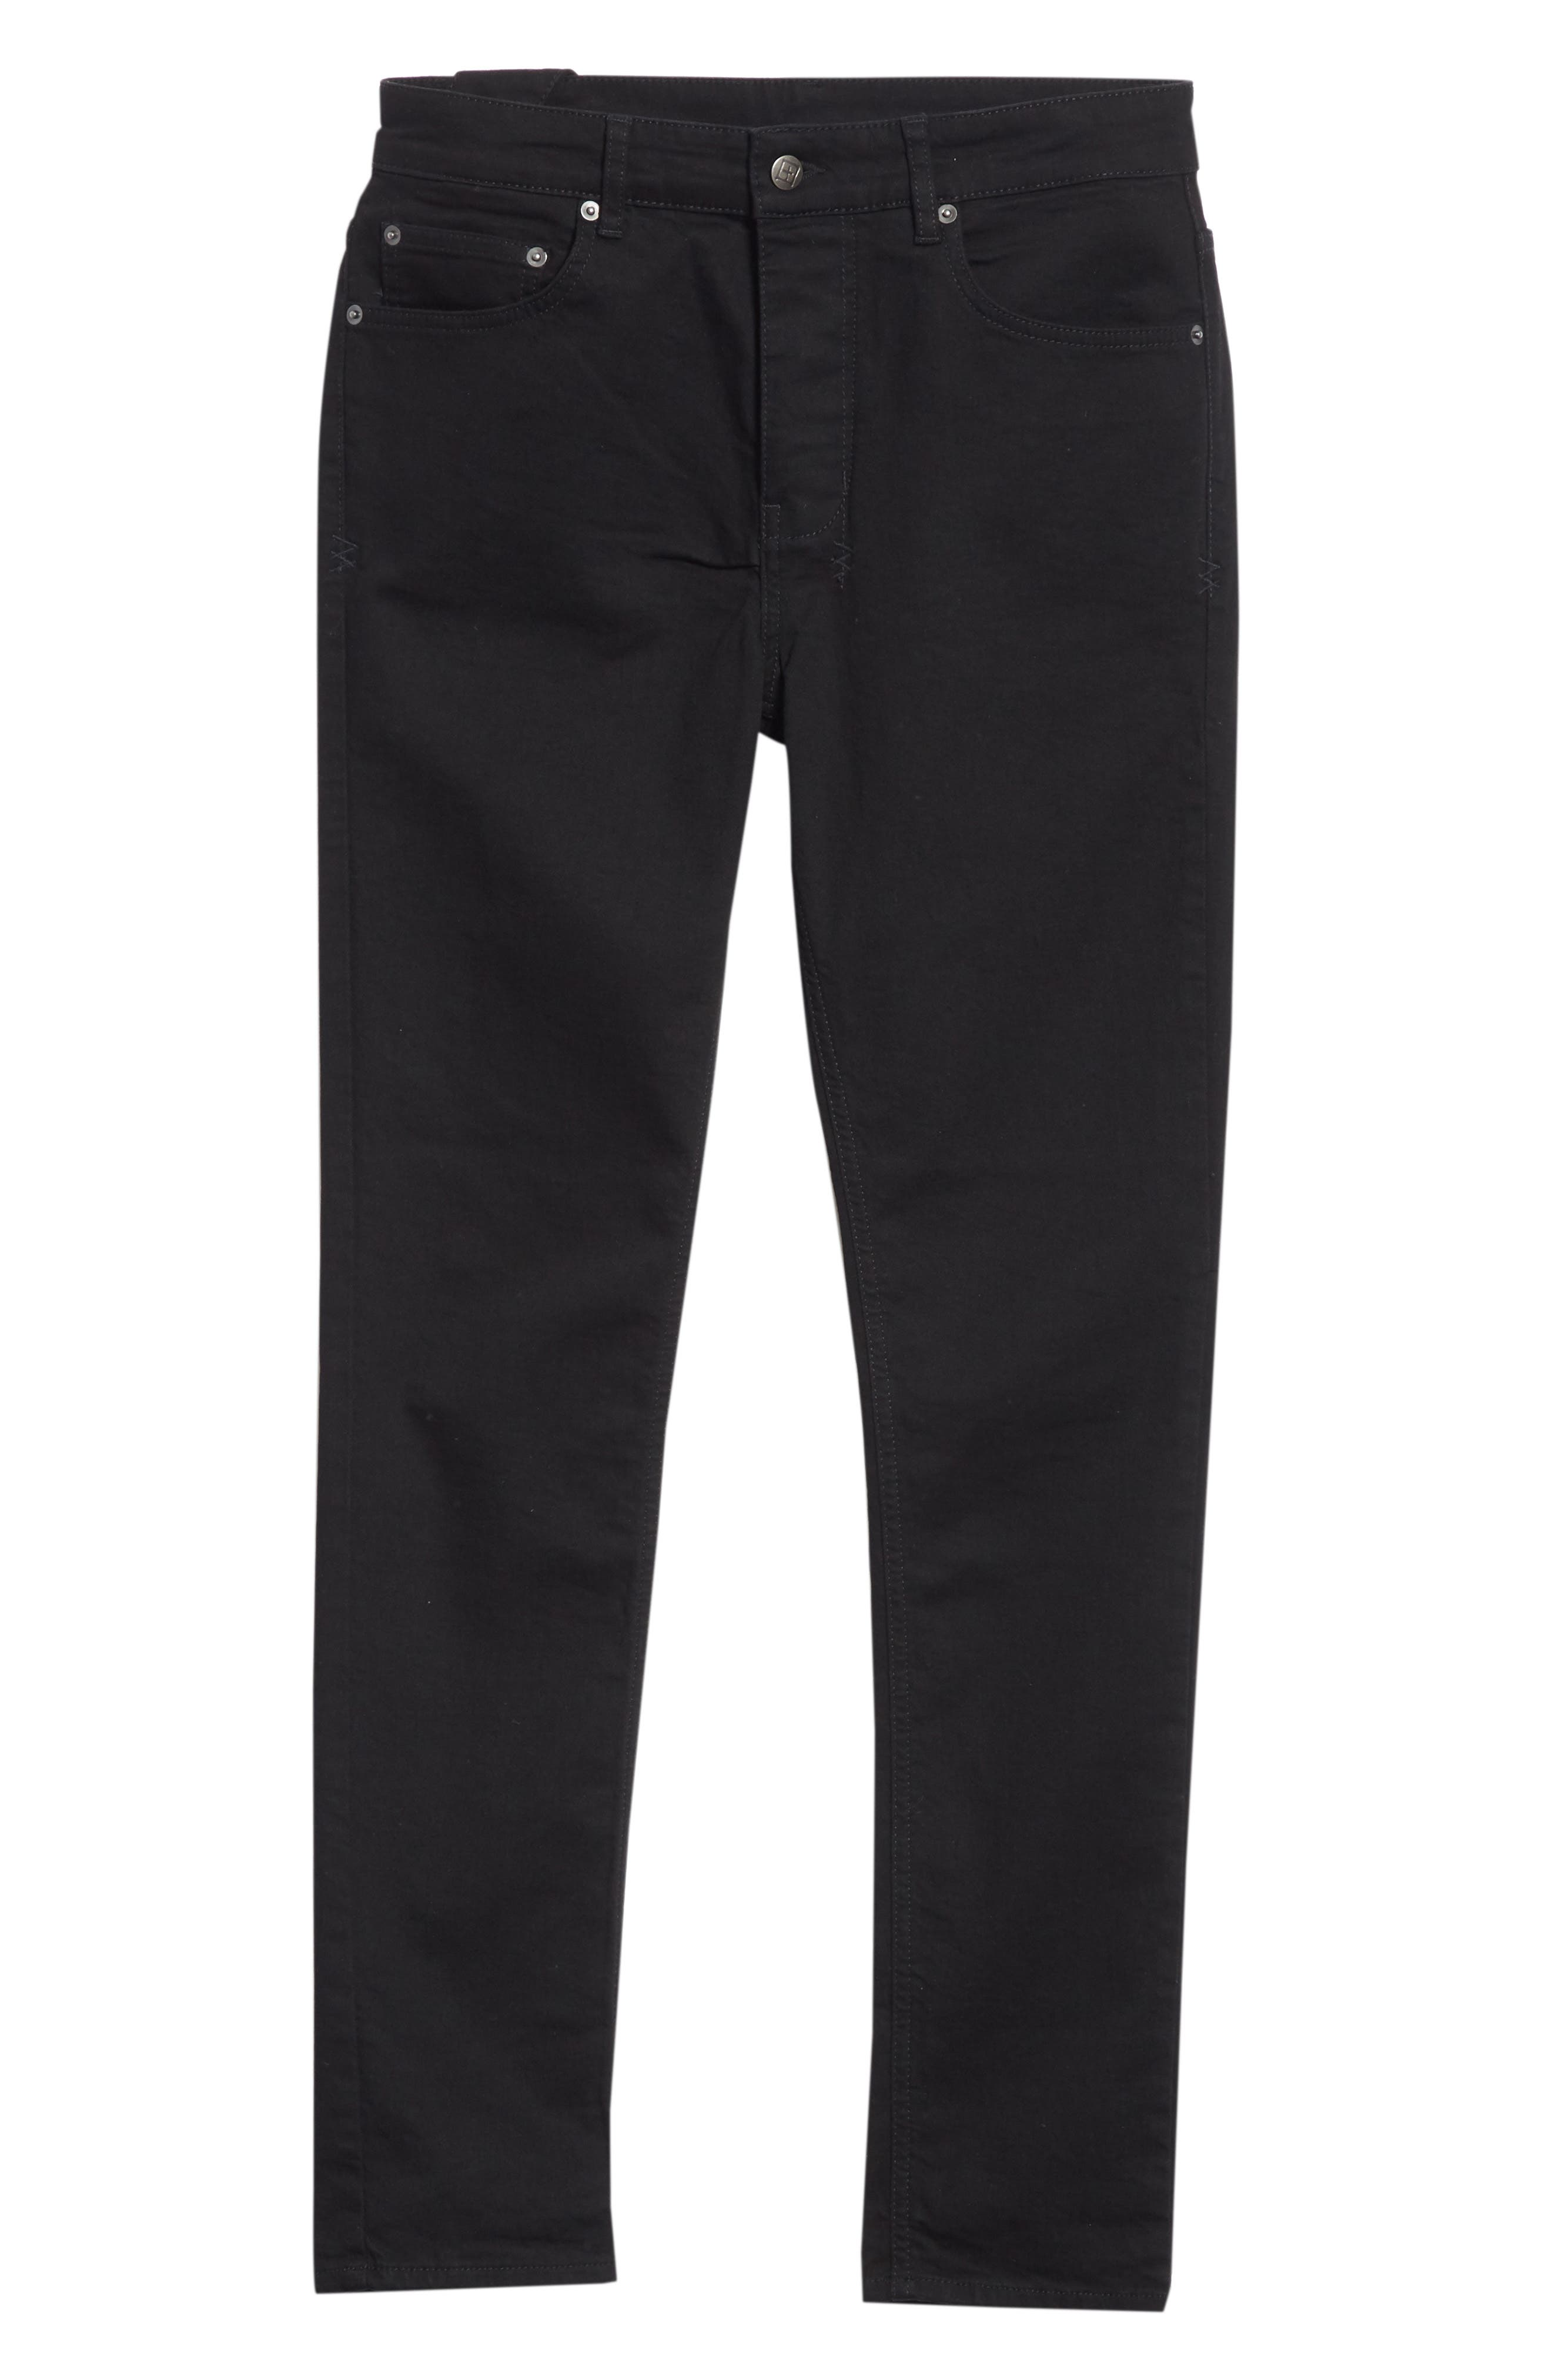 Chitch Laid Skinny Fit Jeans,                             Alternate thumbnail 6, color,                             BLACK